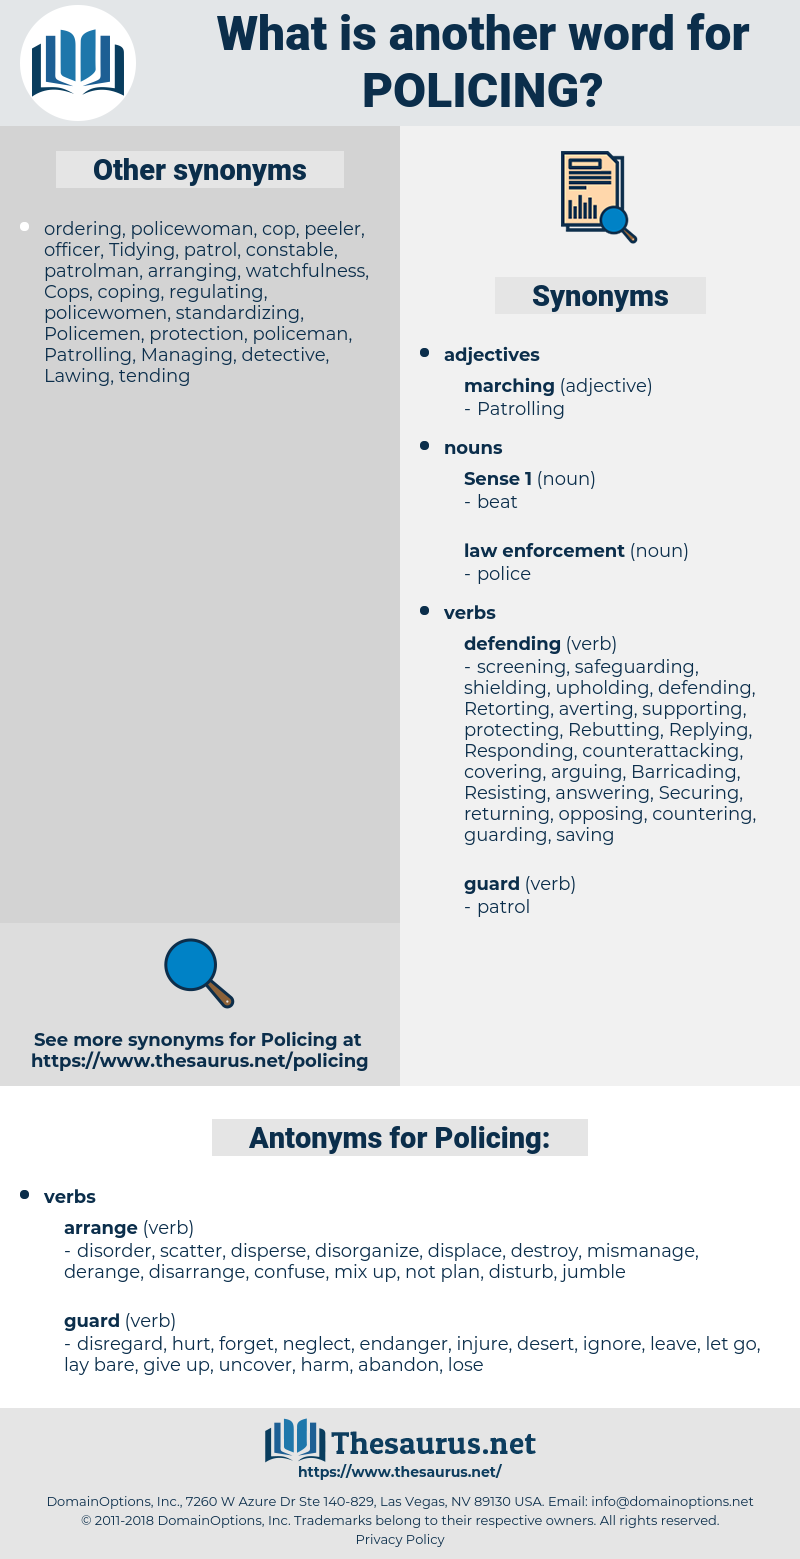 Policing, synonym Policing, another word for Policing, words like Policing, thesaurus Policing